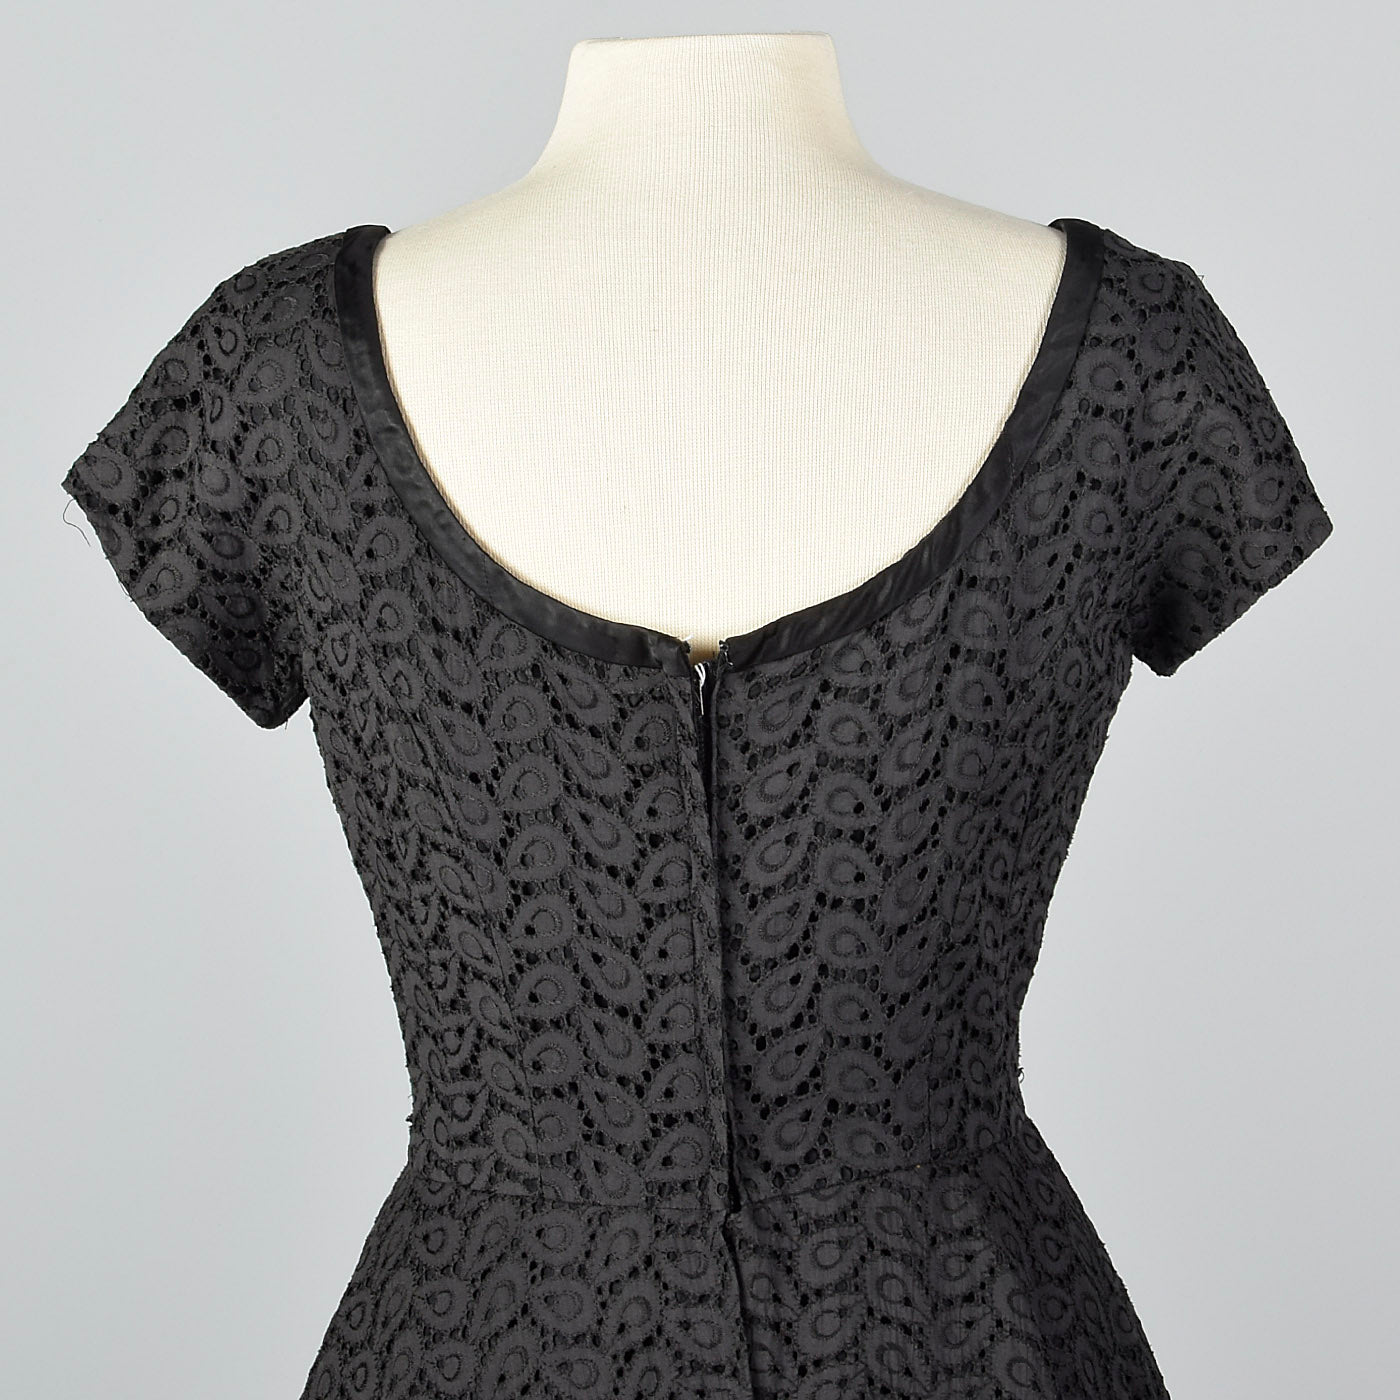 1950s Eyelet Overlay Dress with Large Peplum Waist